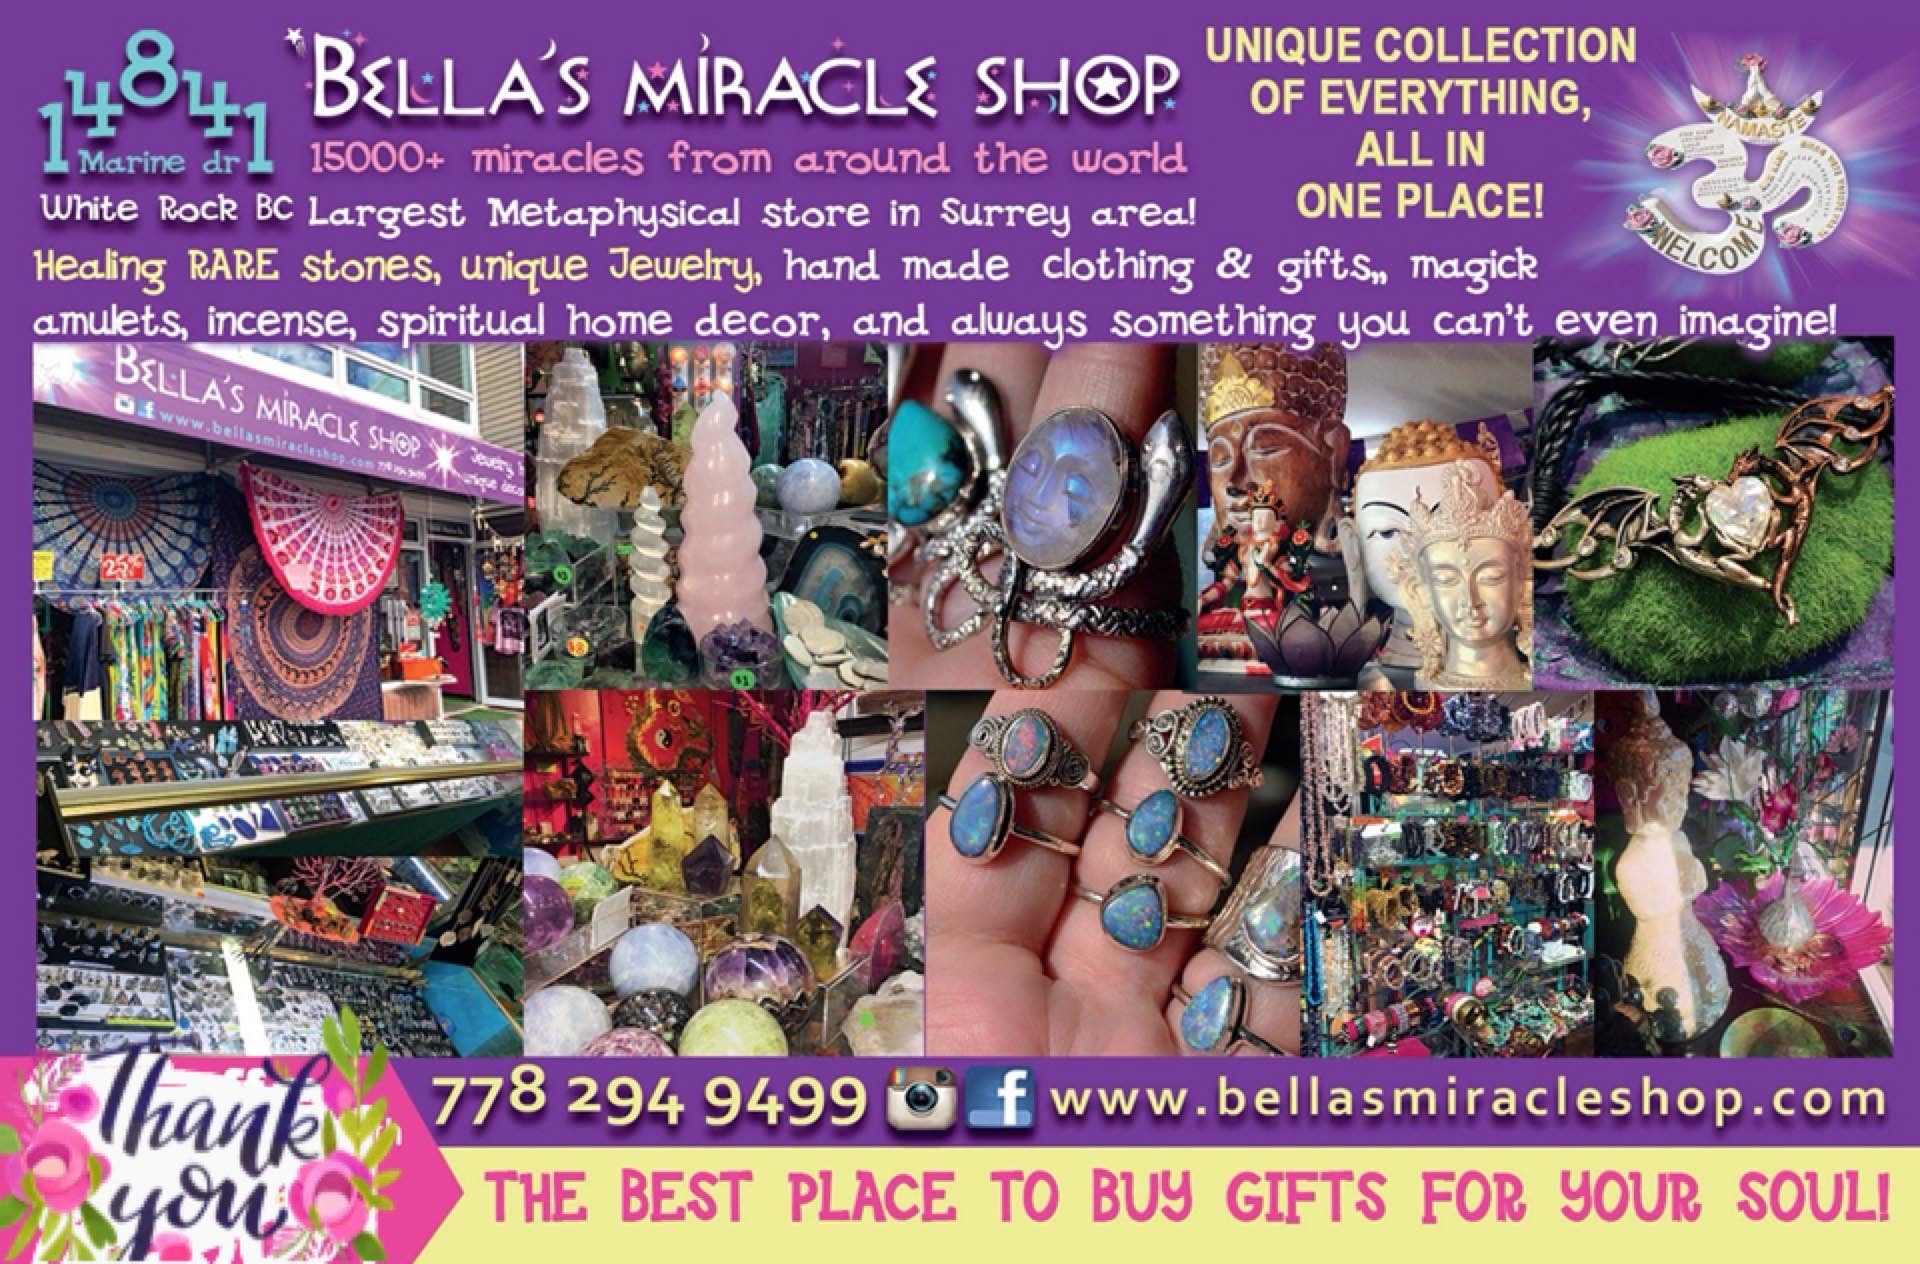 Contact info/Hours | BELLA'S MIRACLE SHOP